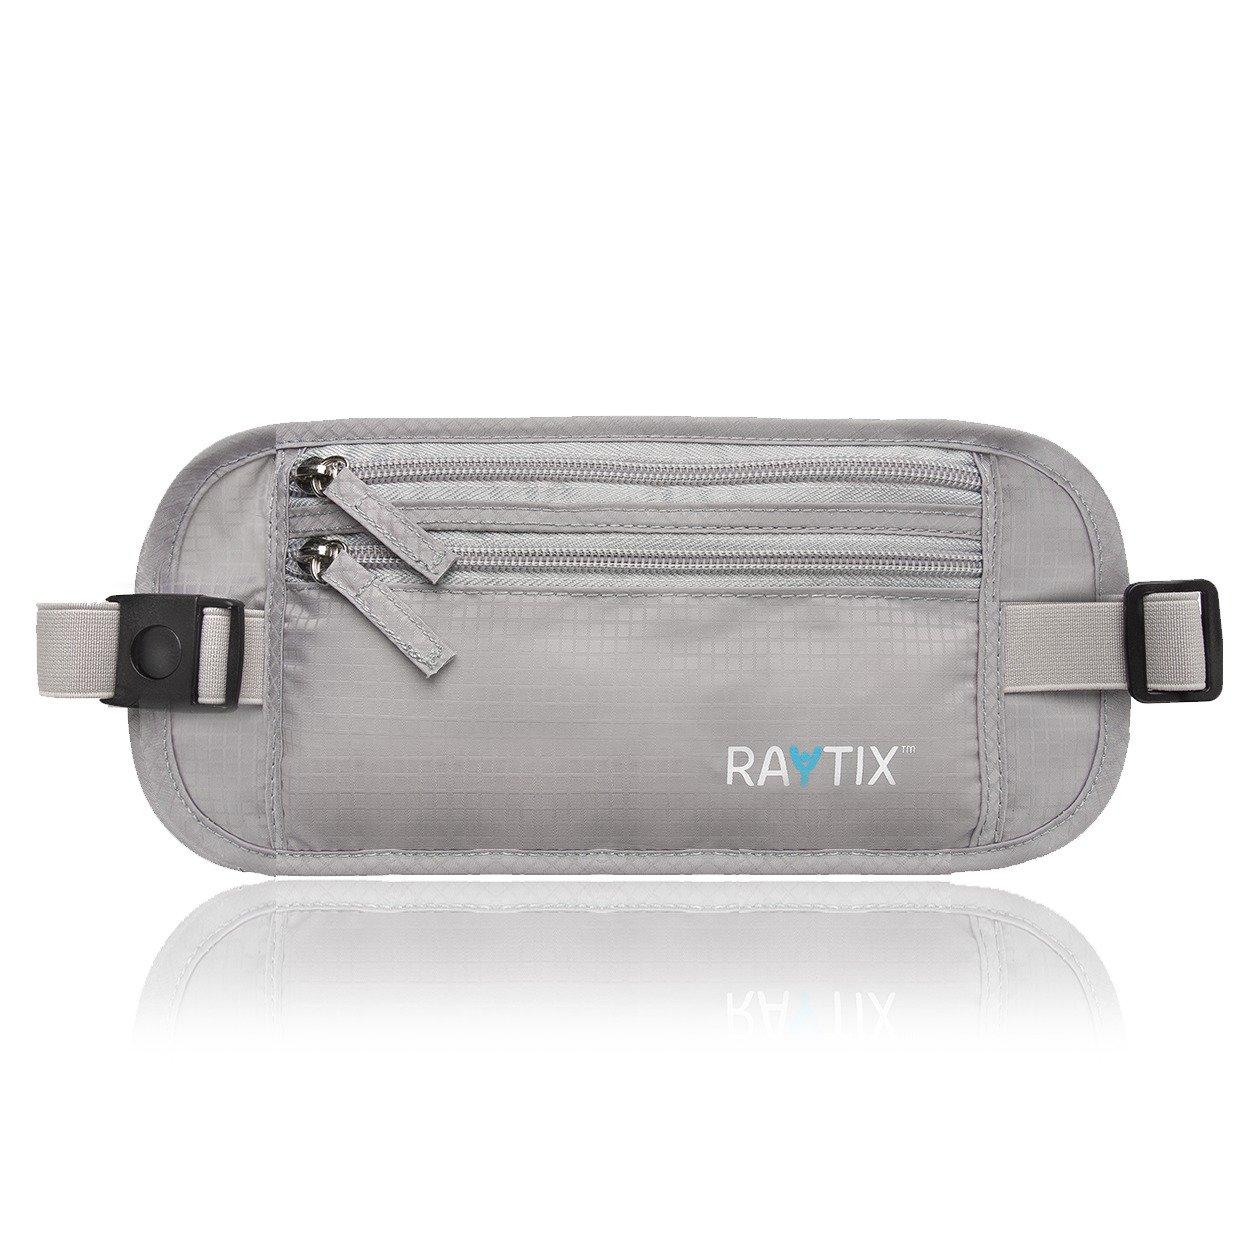 Travel Money Belt: Safe, Well Designed & Comfortable Money Carrier For Travelling & More - Blocks RFID Transmissions – Secure, Hidden Travel Wallet With Adjustable Straps, Lightweight & Thin (GRAY)